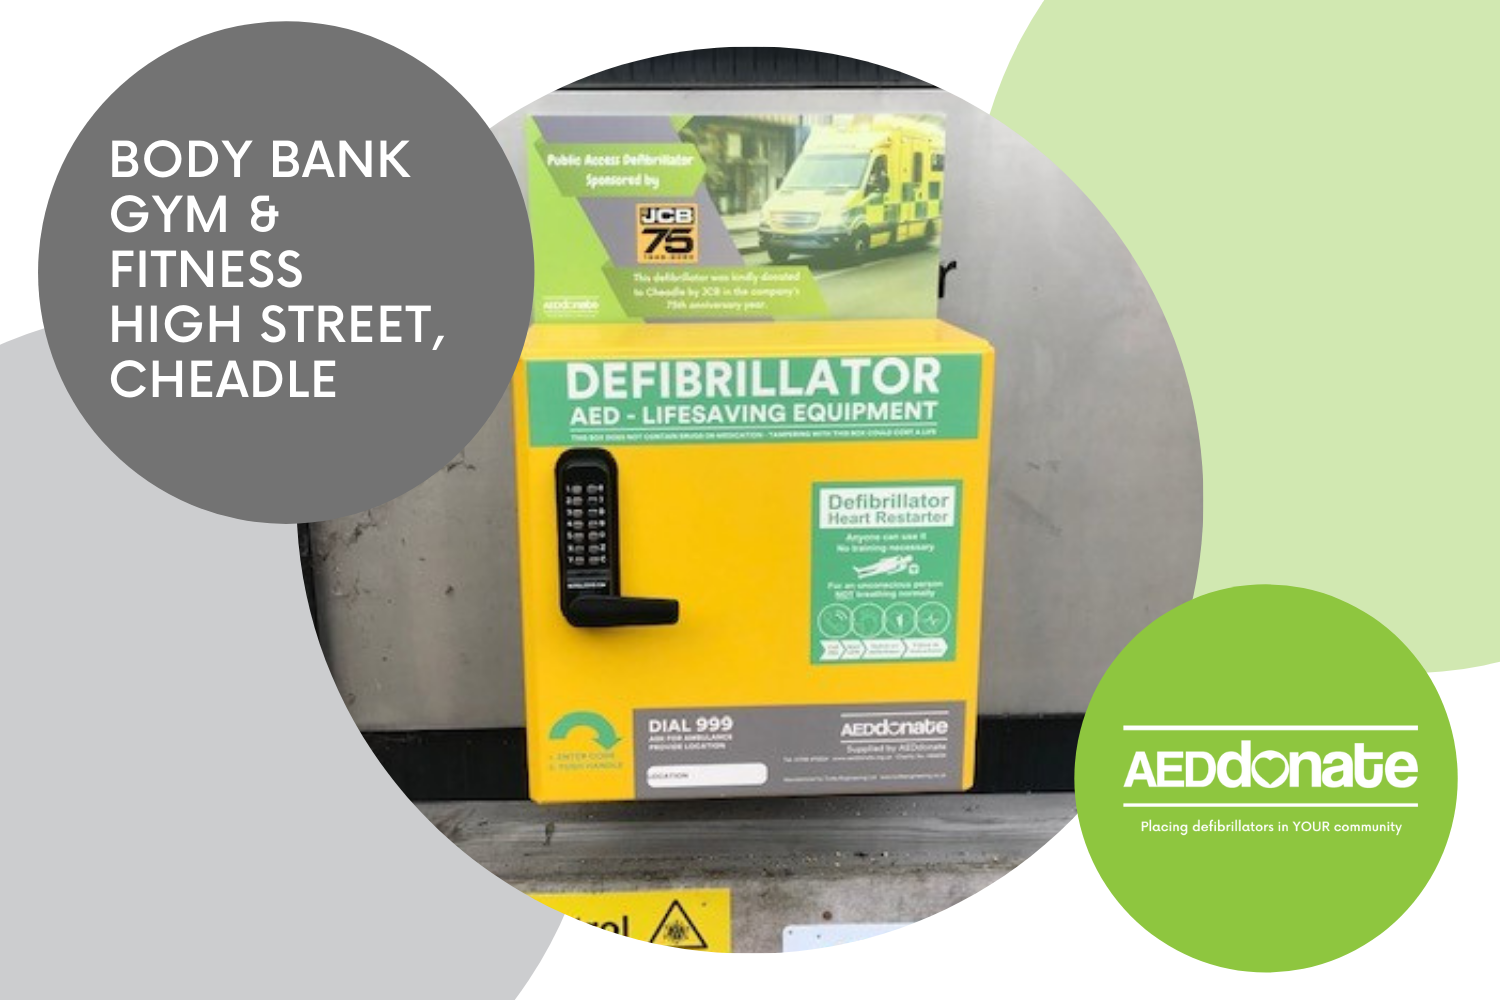 New Public Access Defibrillator Installed at Body Bank Gym & Fitness, Cheadle